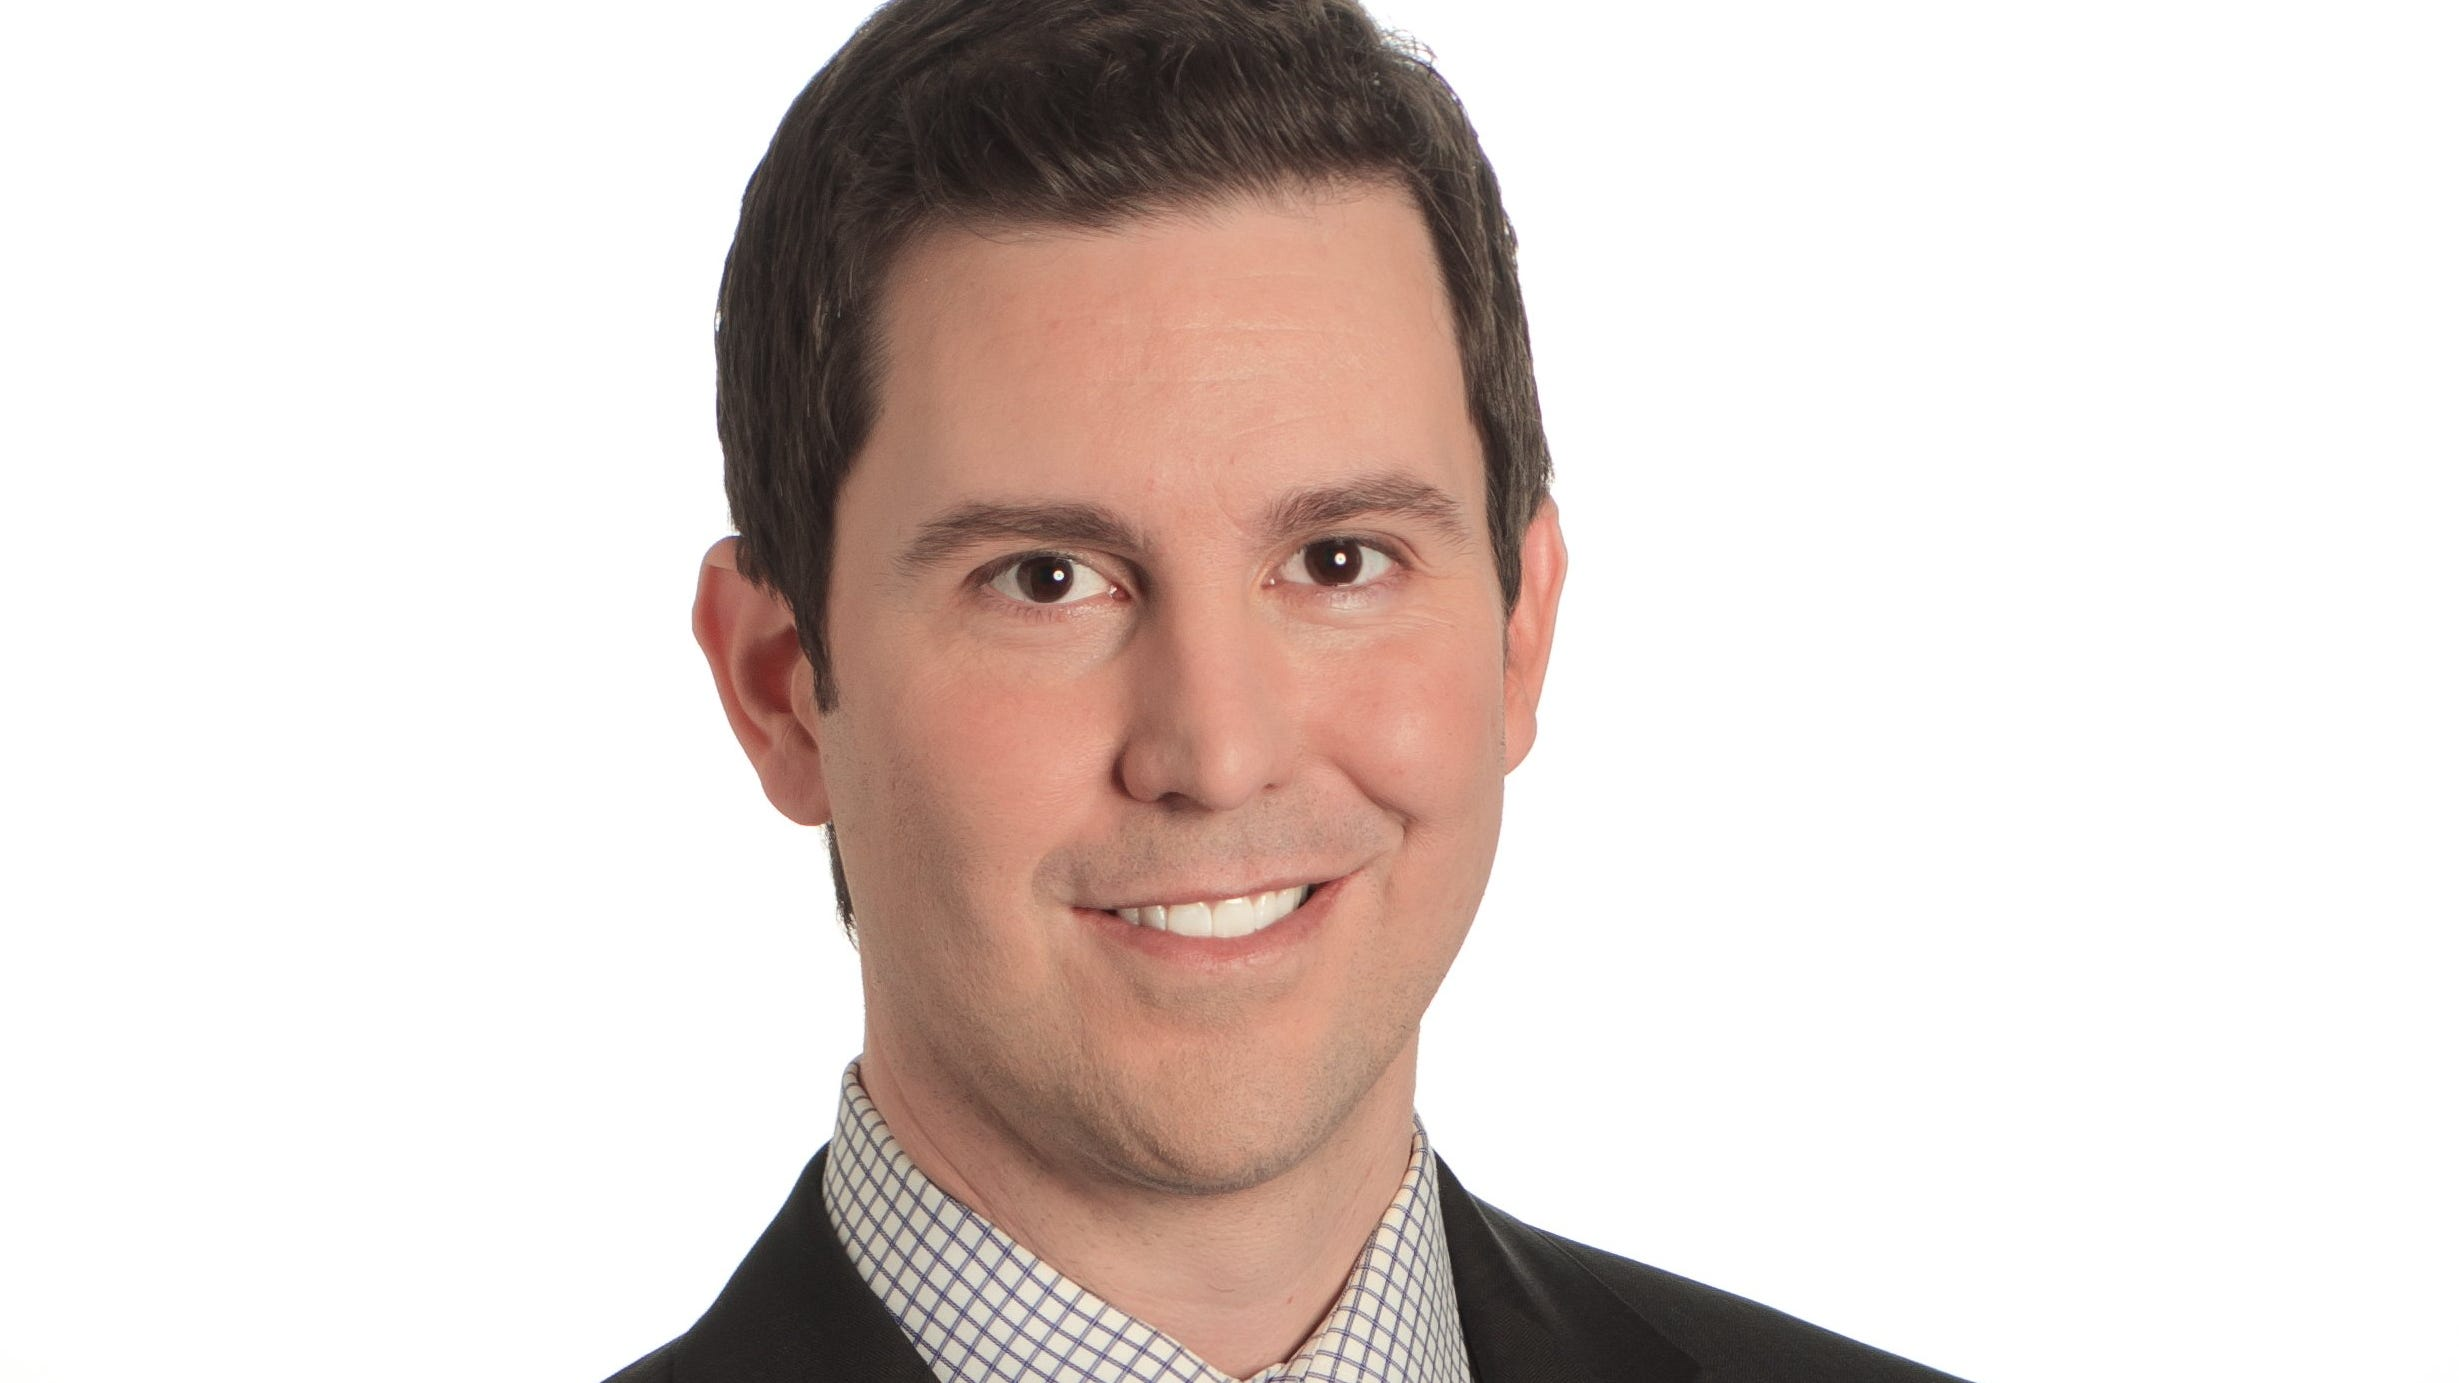 Chief Weatherman / meteorologist Ben Bailey leaves WDIV after 7 years